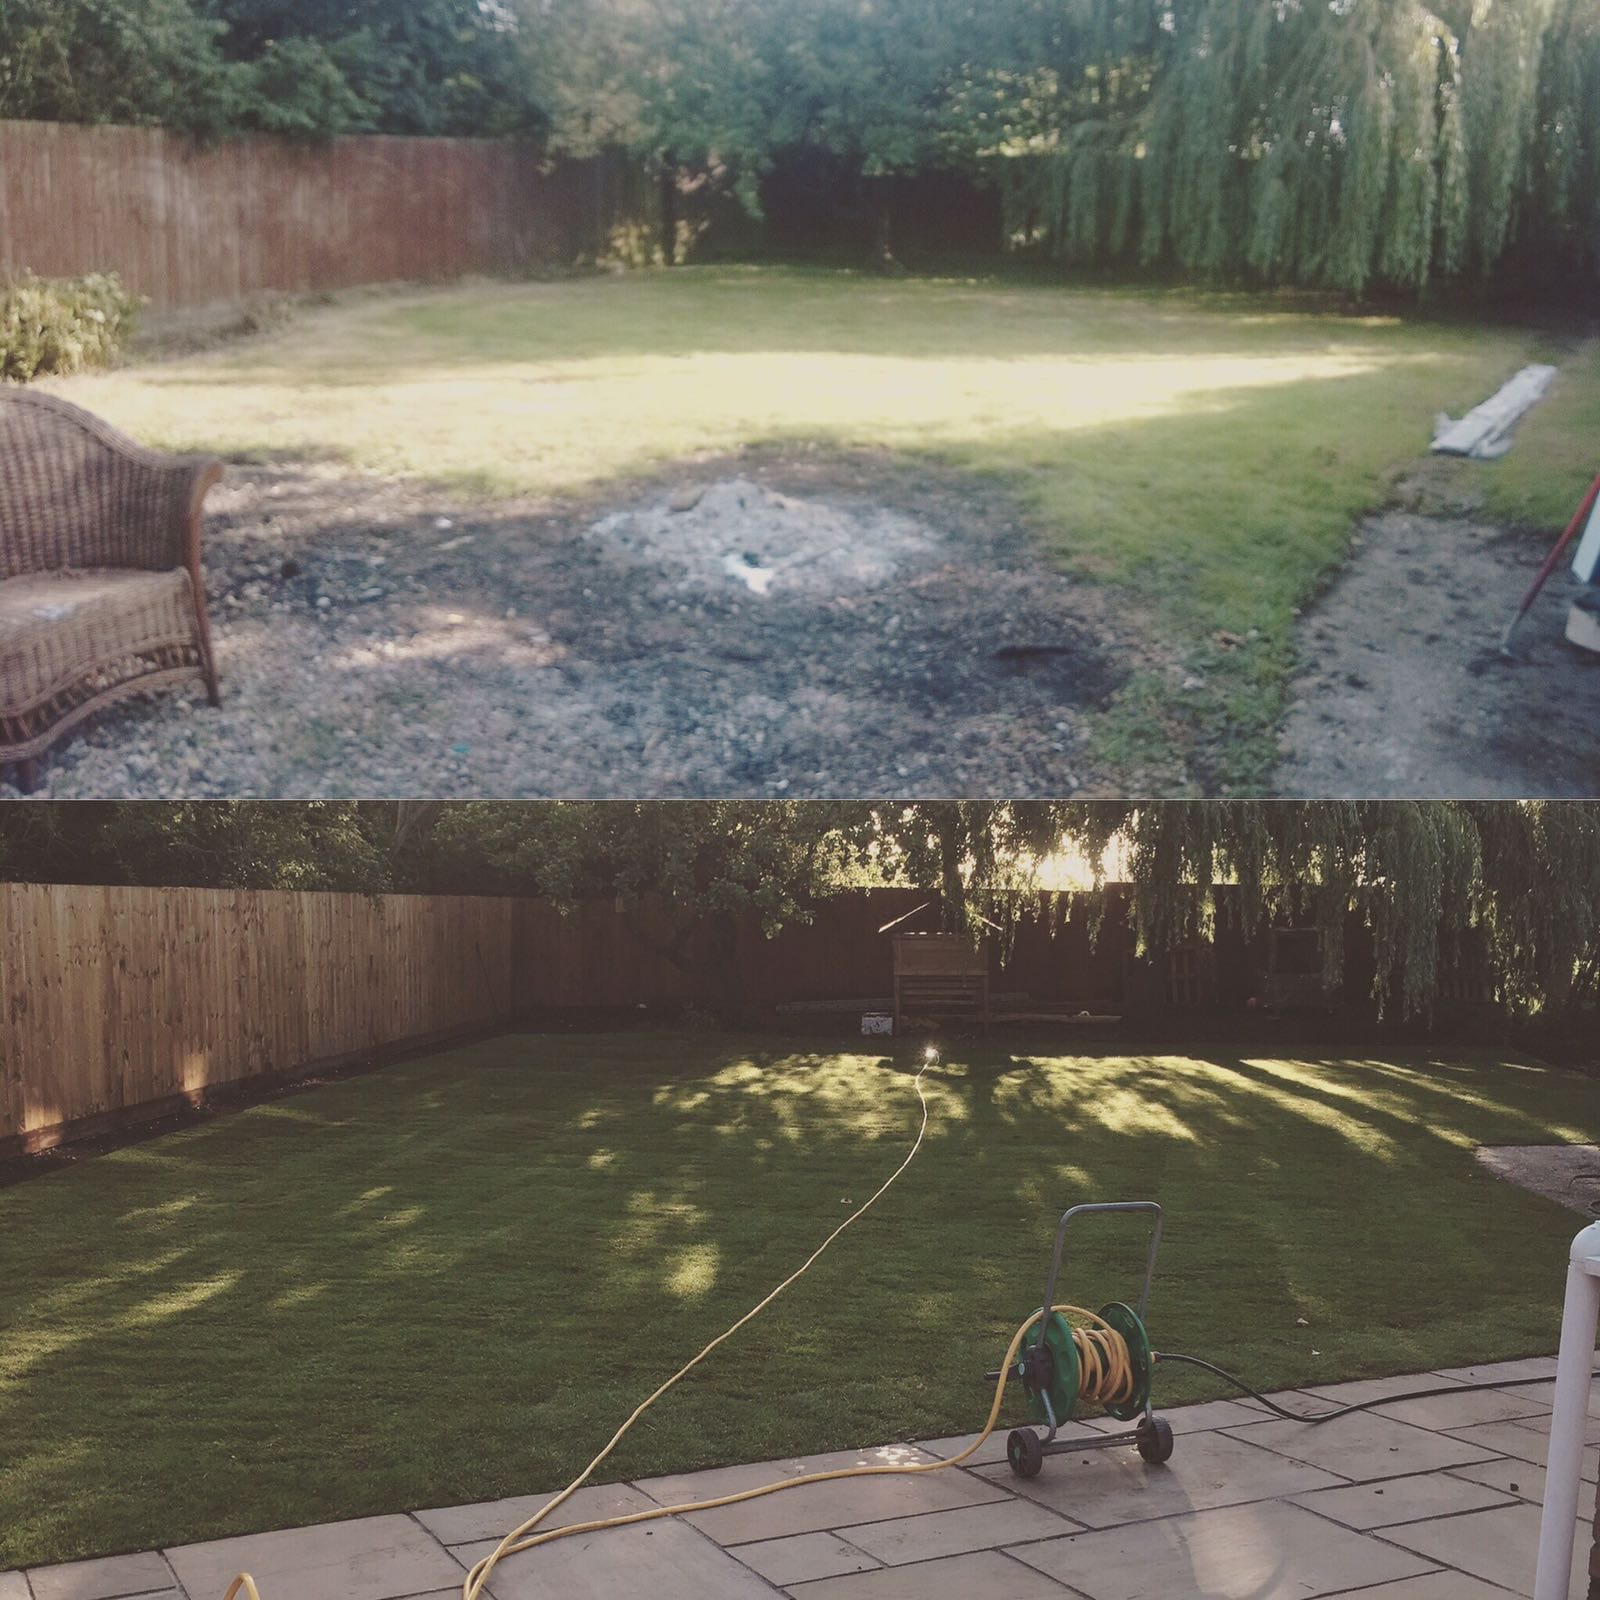 A before and after image showing landscape work we provided